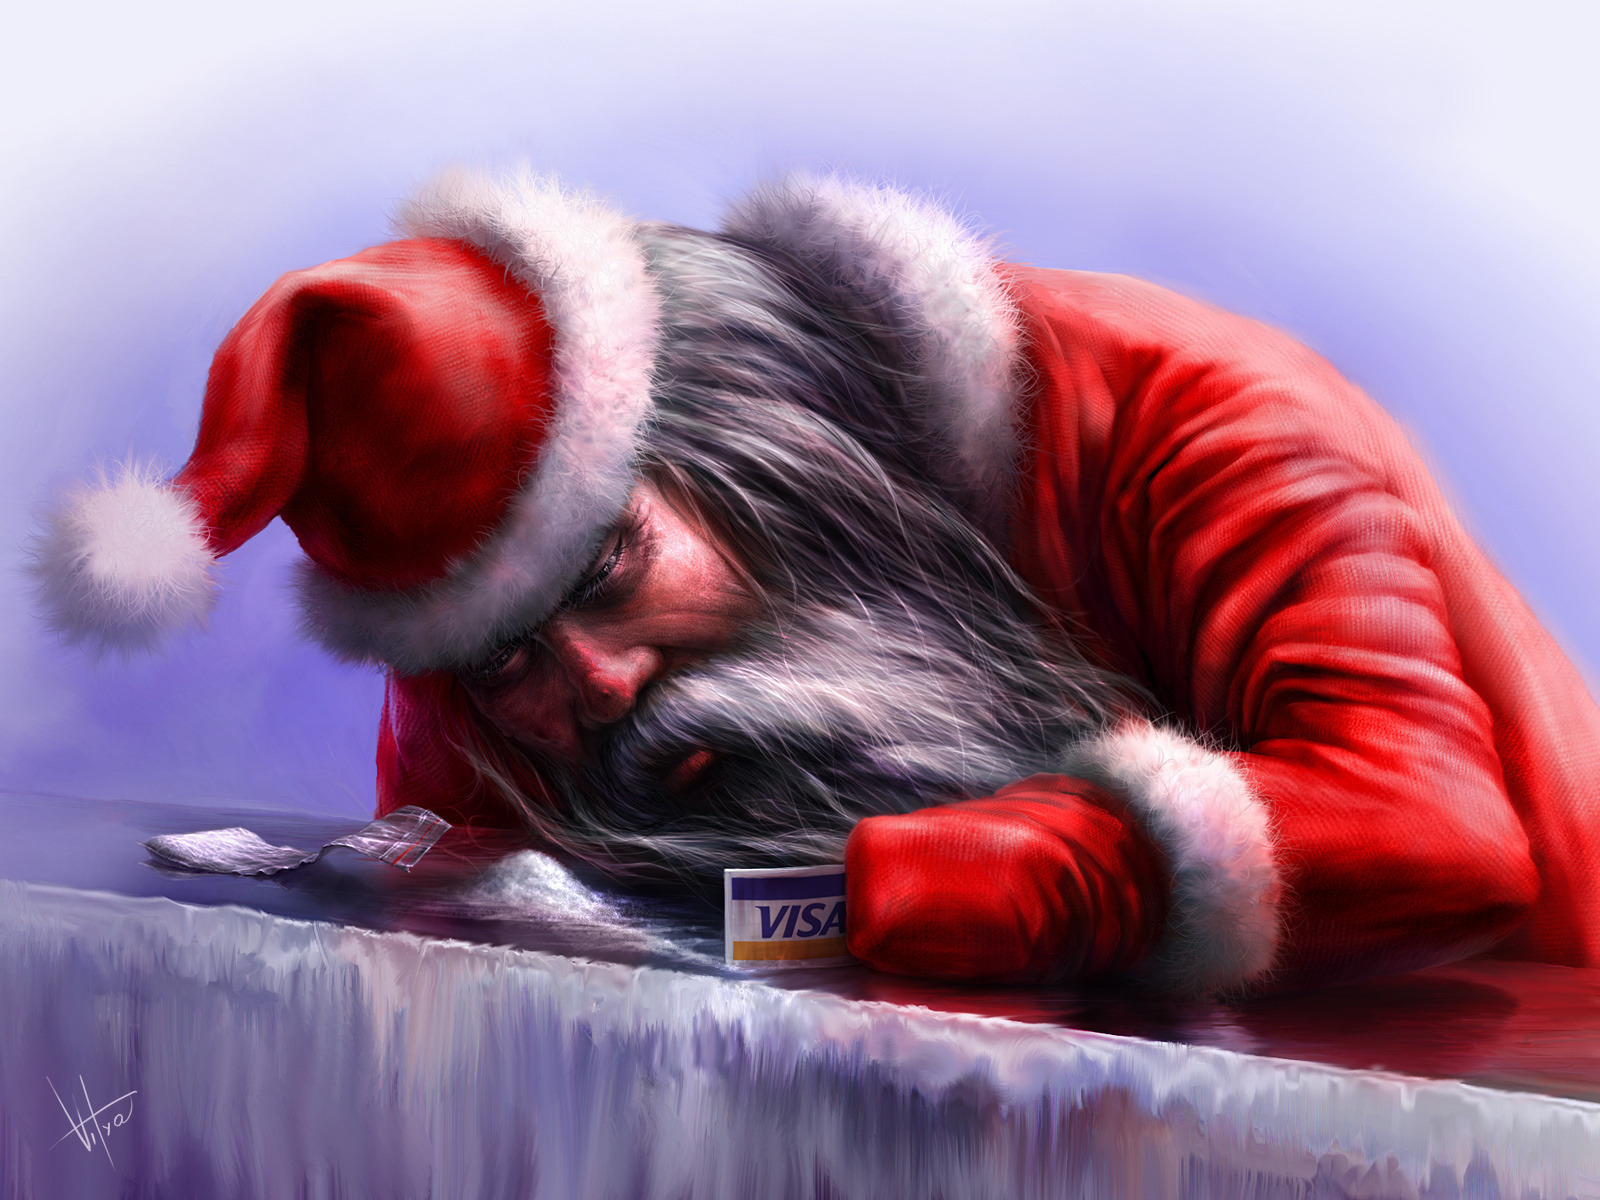 Claus wallpaper sniffing snow collecting his visa card as cocaine 1600x1200